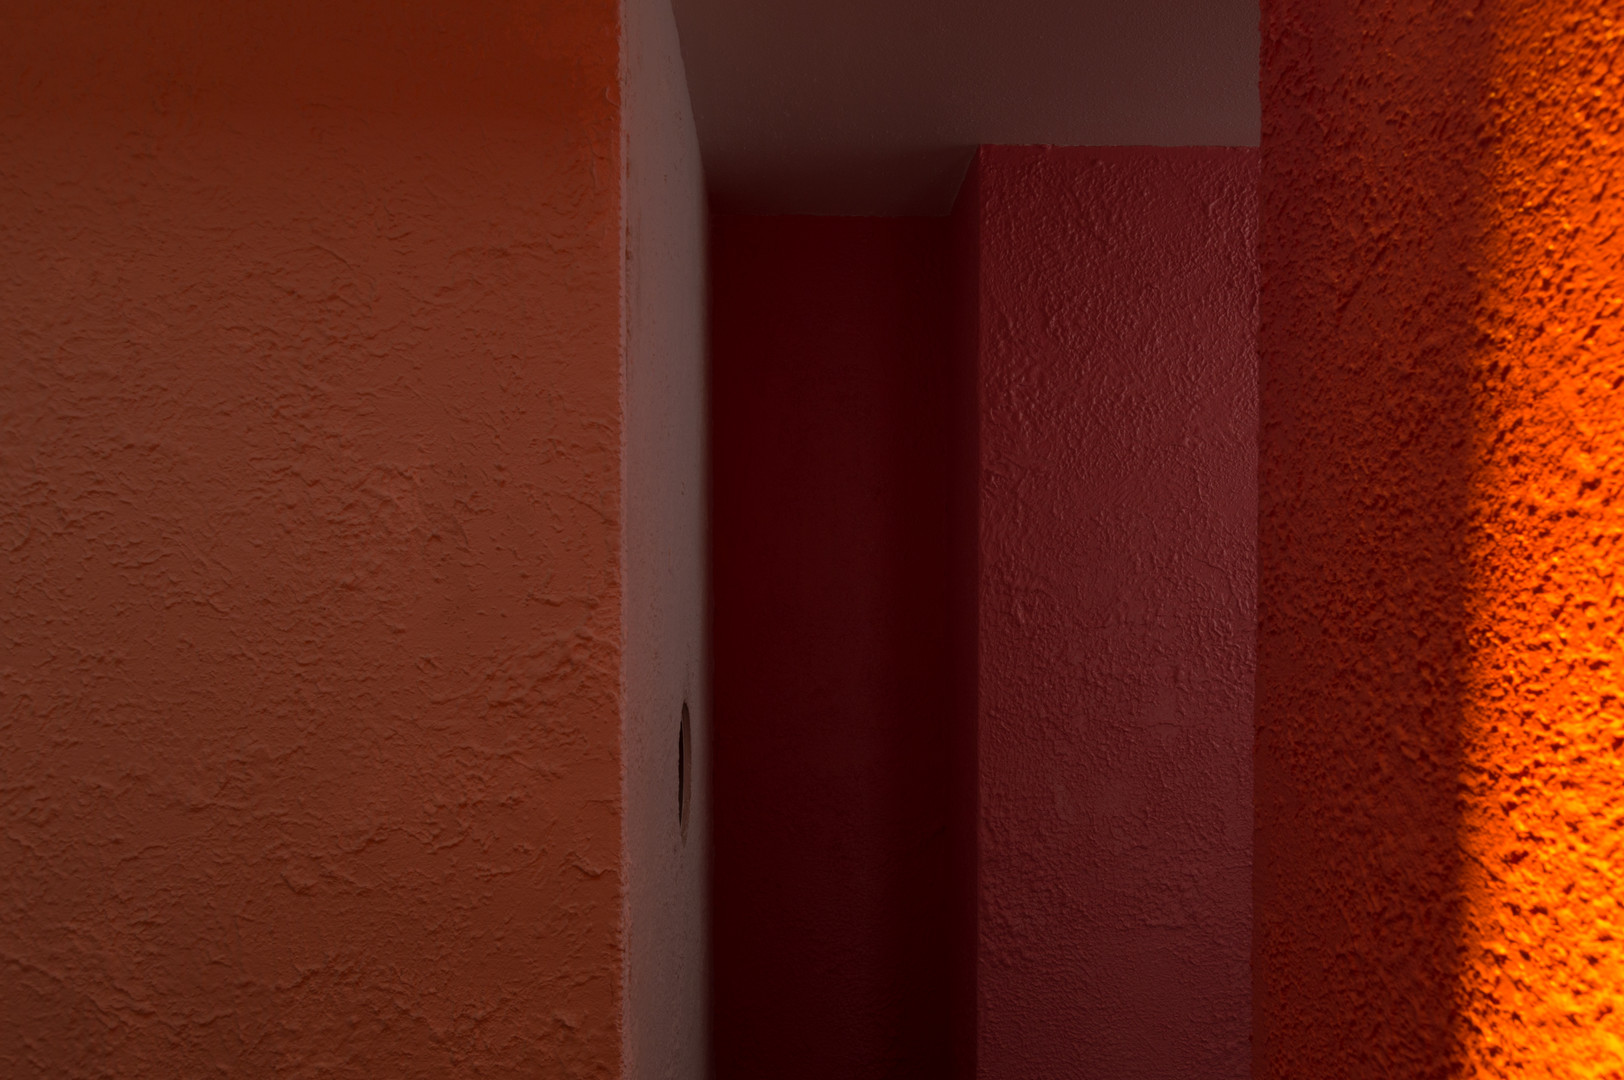 Interior of light study model of Casa Luis Barragán by Noreile Breen at the Venice Biennale 2018